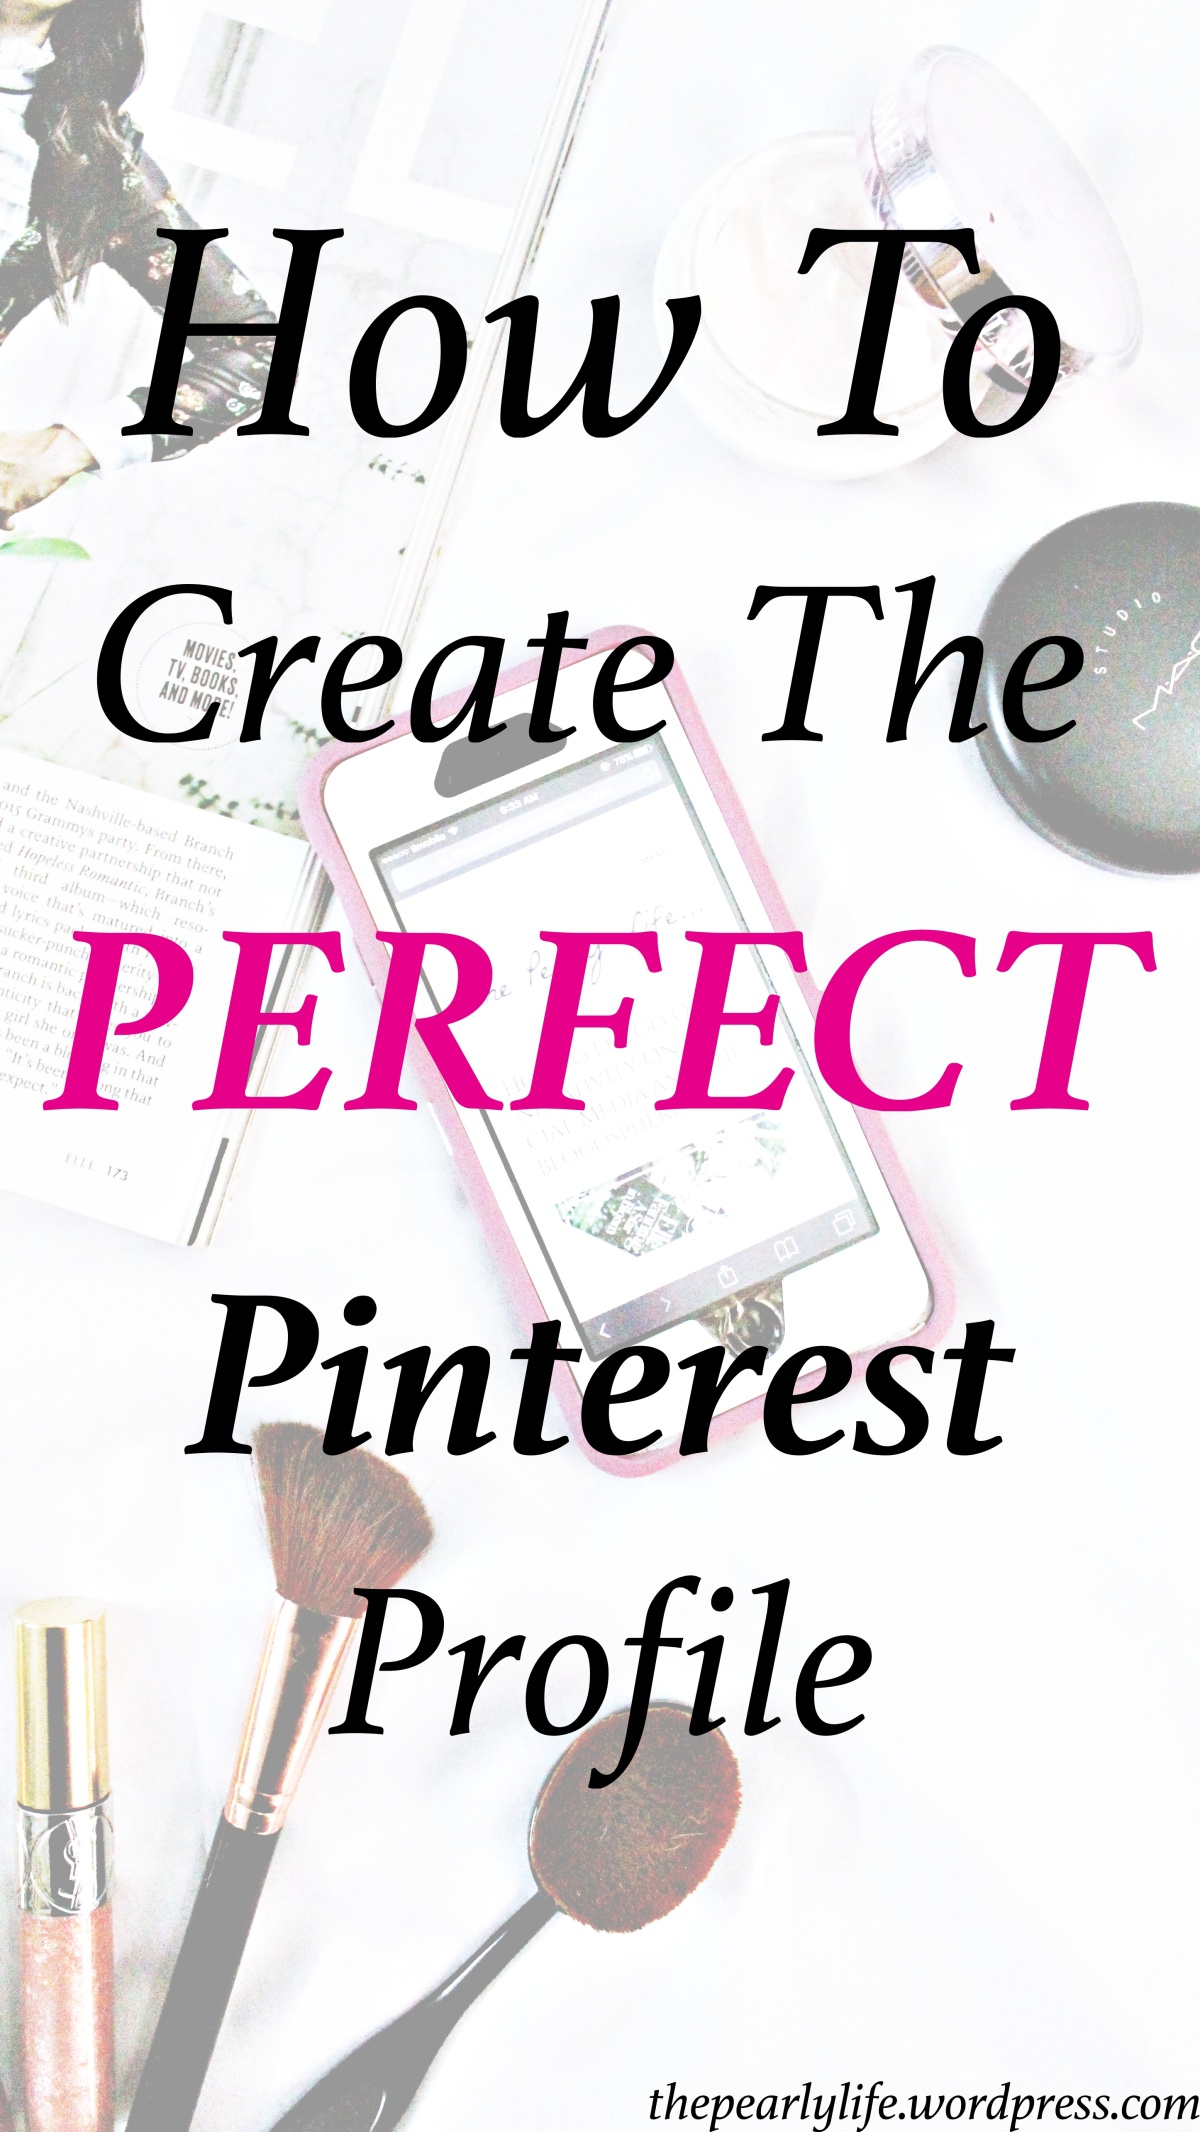 How To Create The Perfect Pinterest Profile And Drive Traffic To Your Blog